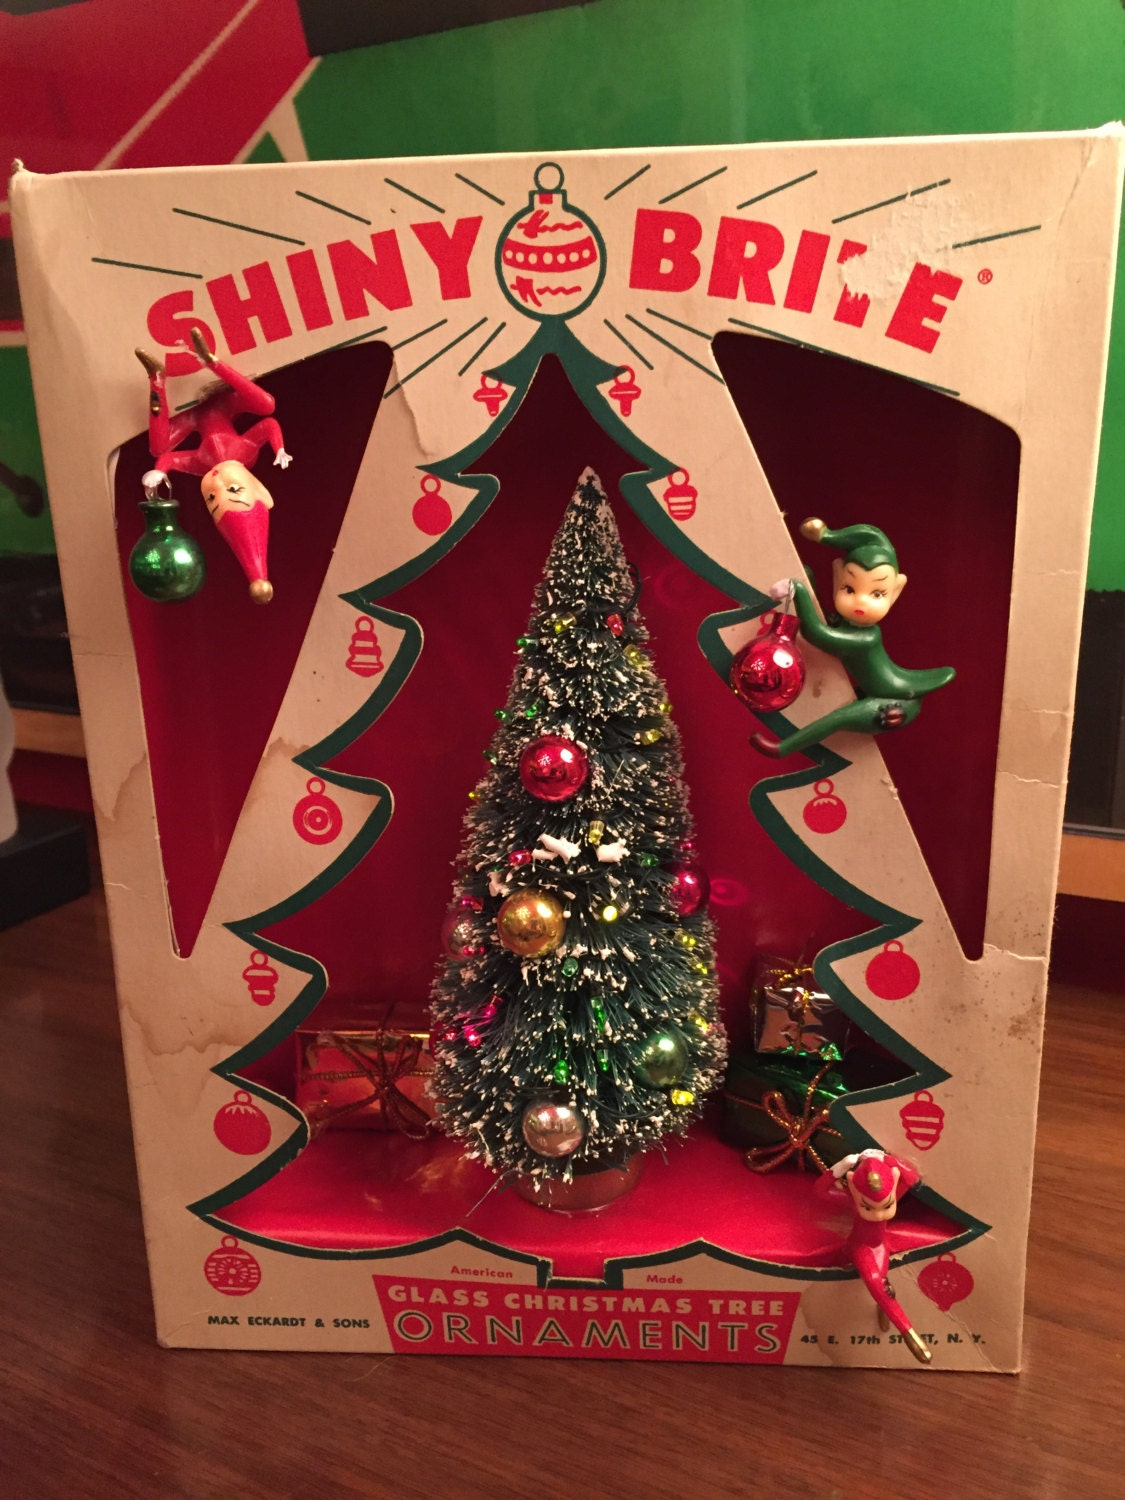 Vintage Christmas Shadow Box Diorama Shiny Brite Tree Box